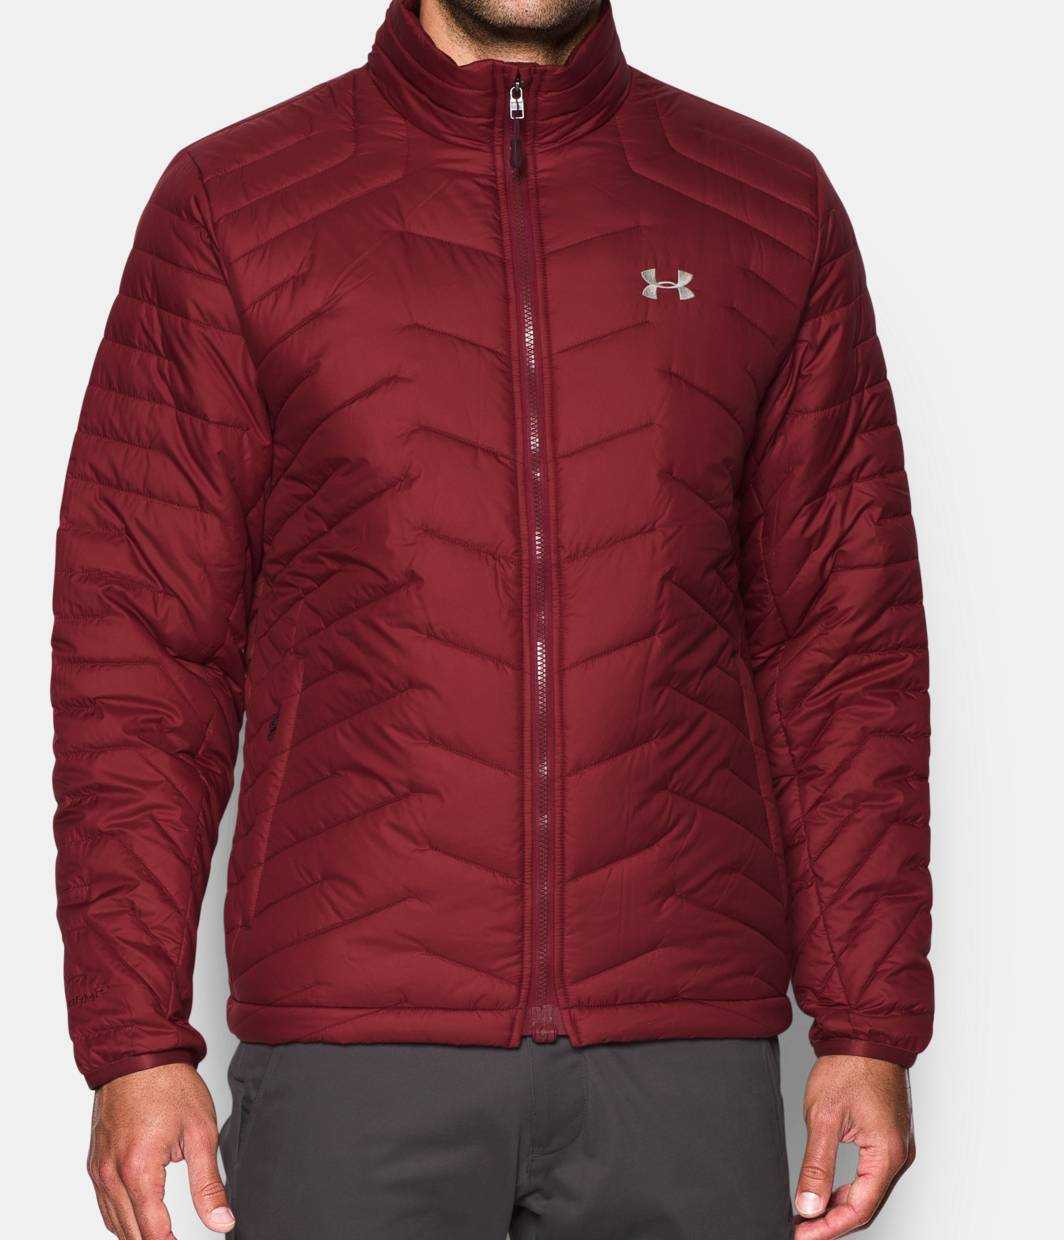 Mens Under Armour Reactor Jacket